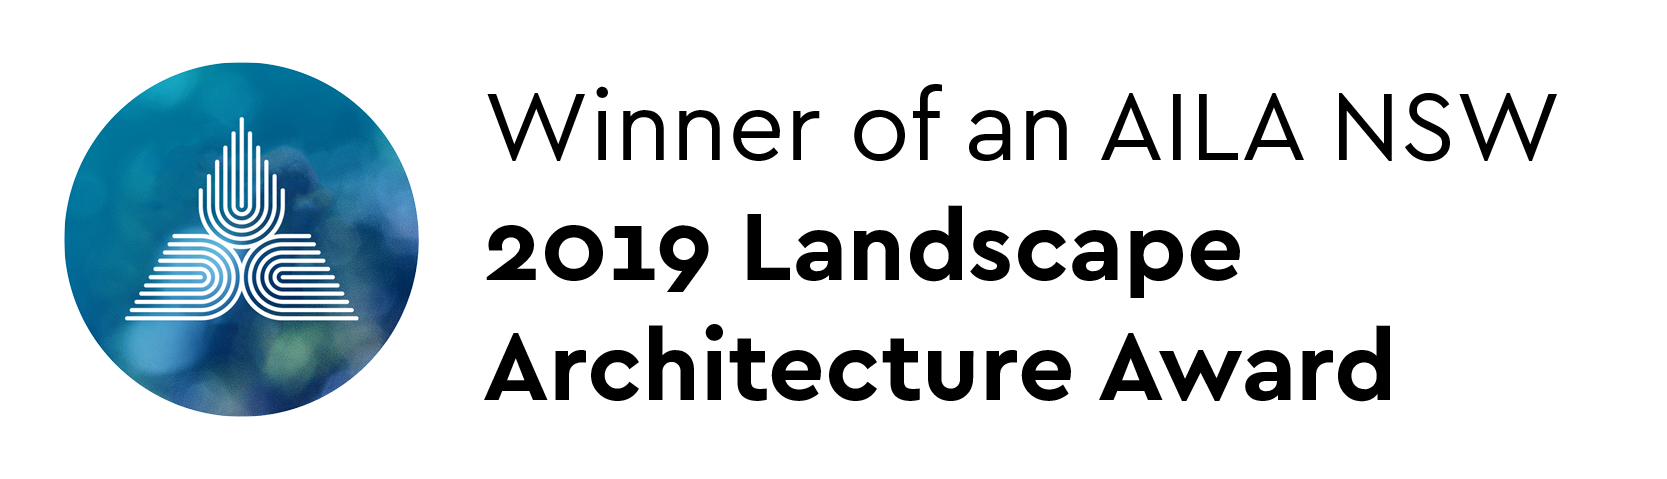 NSW Landscape Architecture Award Winner eSignature.png